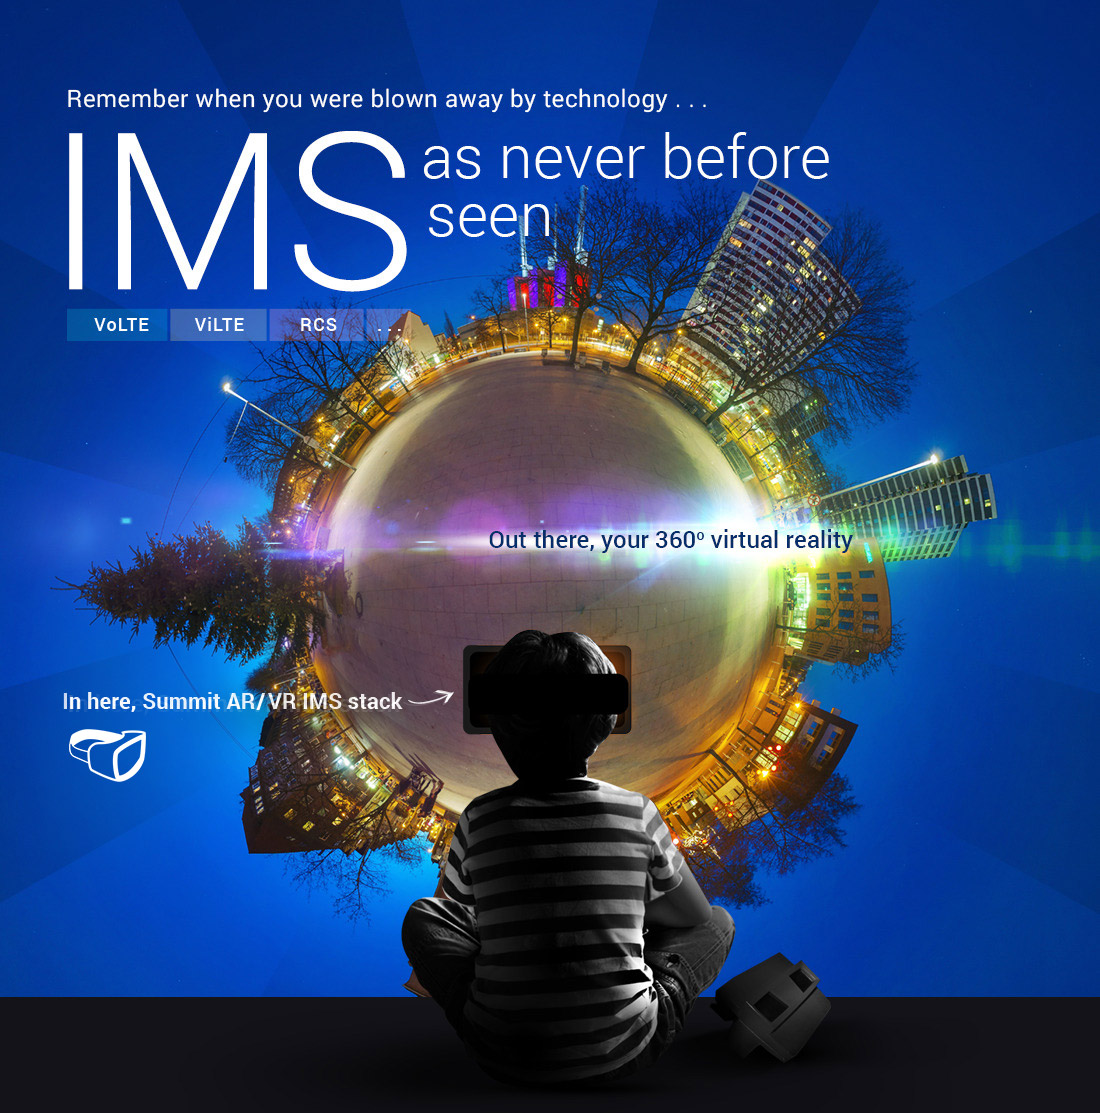 Remember when you were blown away by technology... IMS as never before seen. Out there you 360 degree virtual reality - In here, Summit VR IMS stack